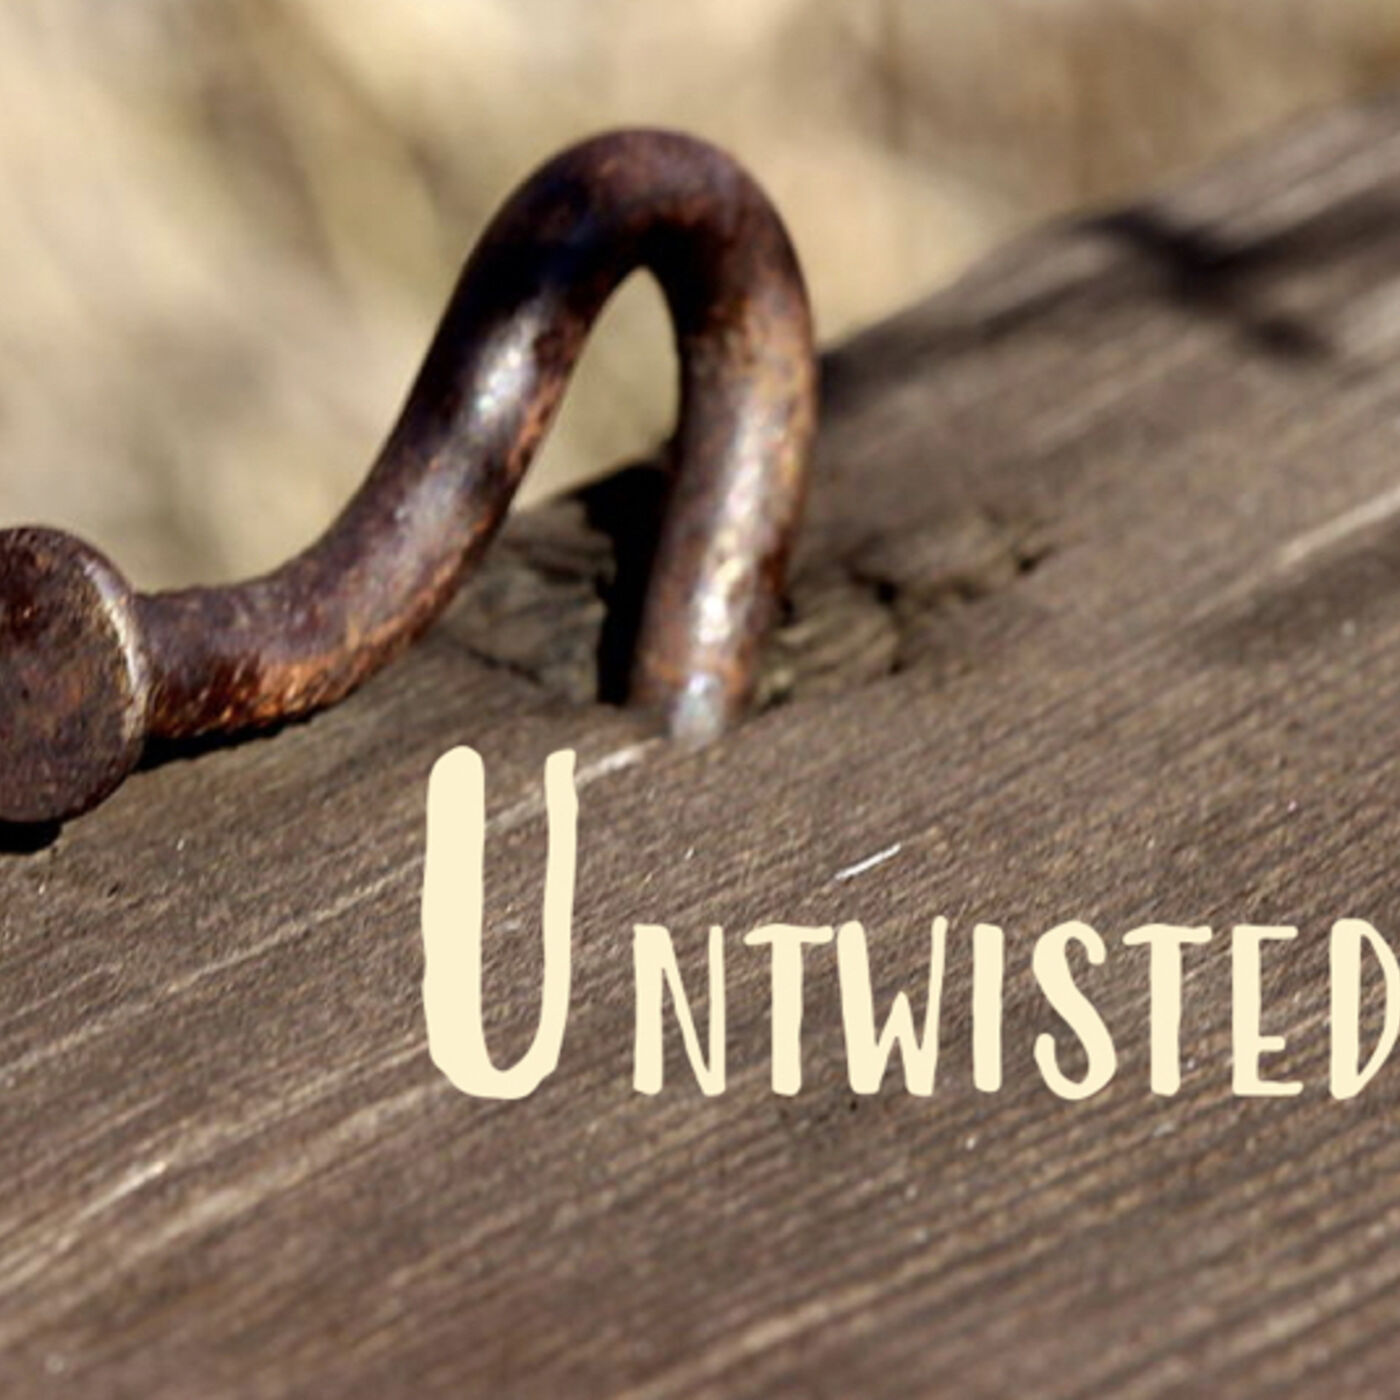 Untwisted: New Every Morning (Faithfulness)